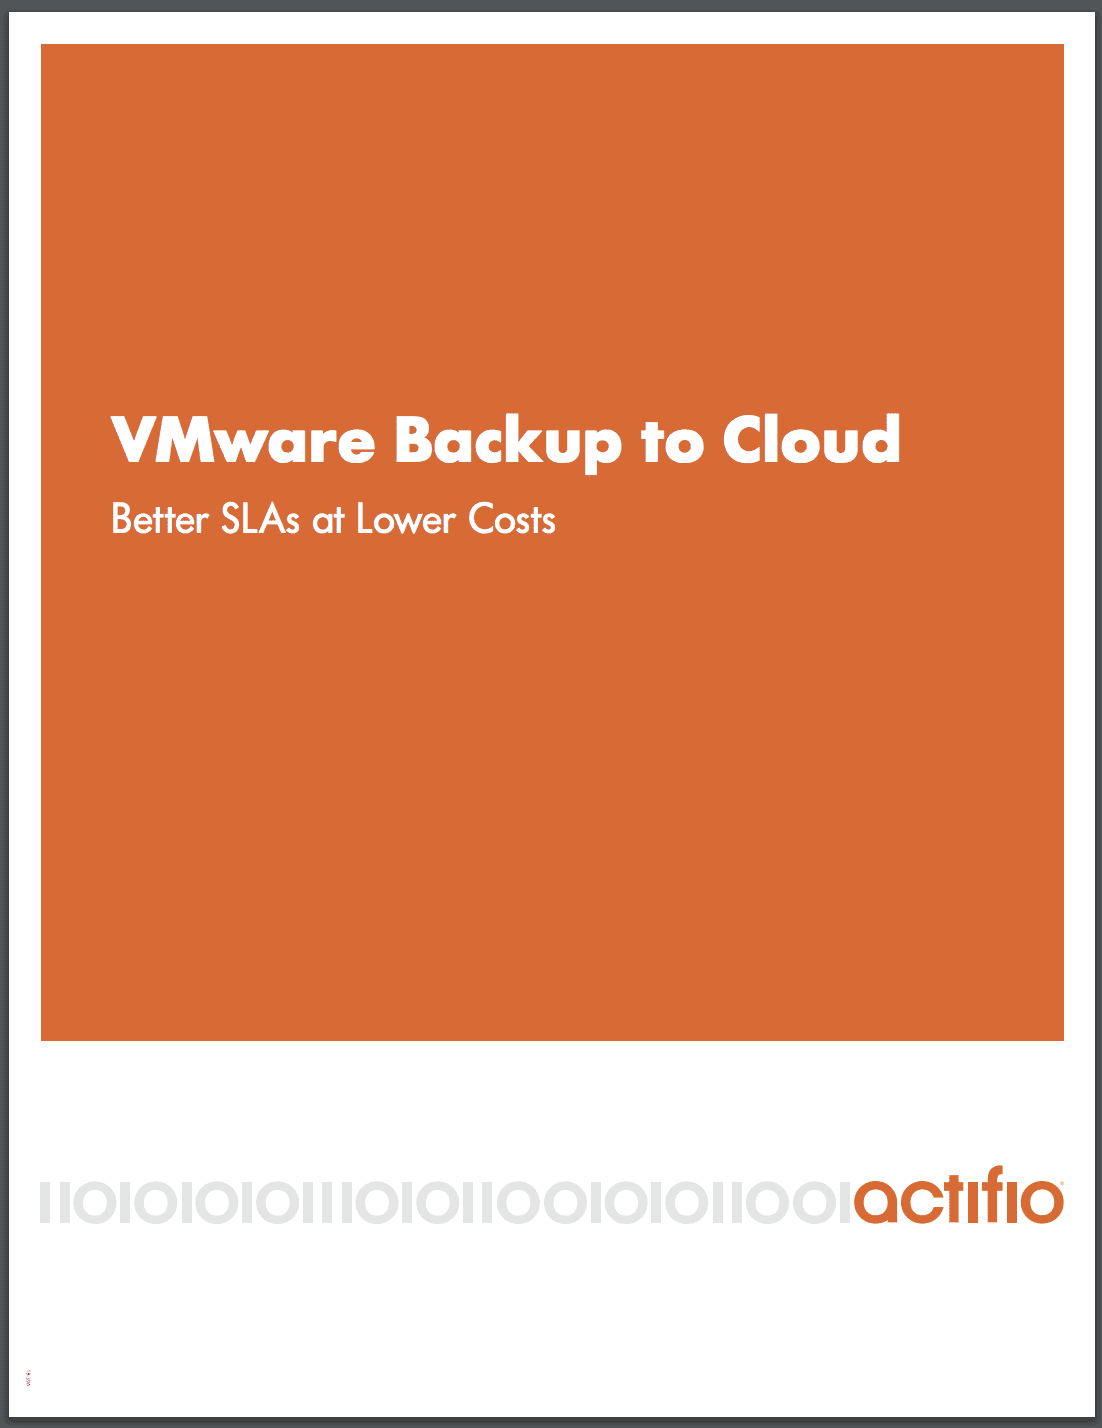 vmware backup to cloud